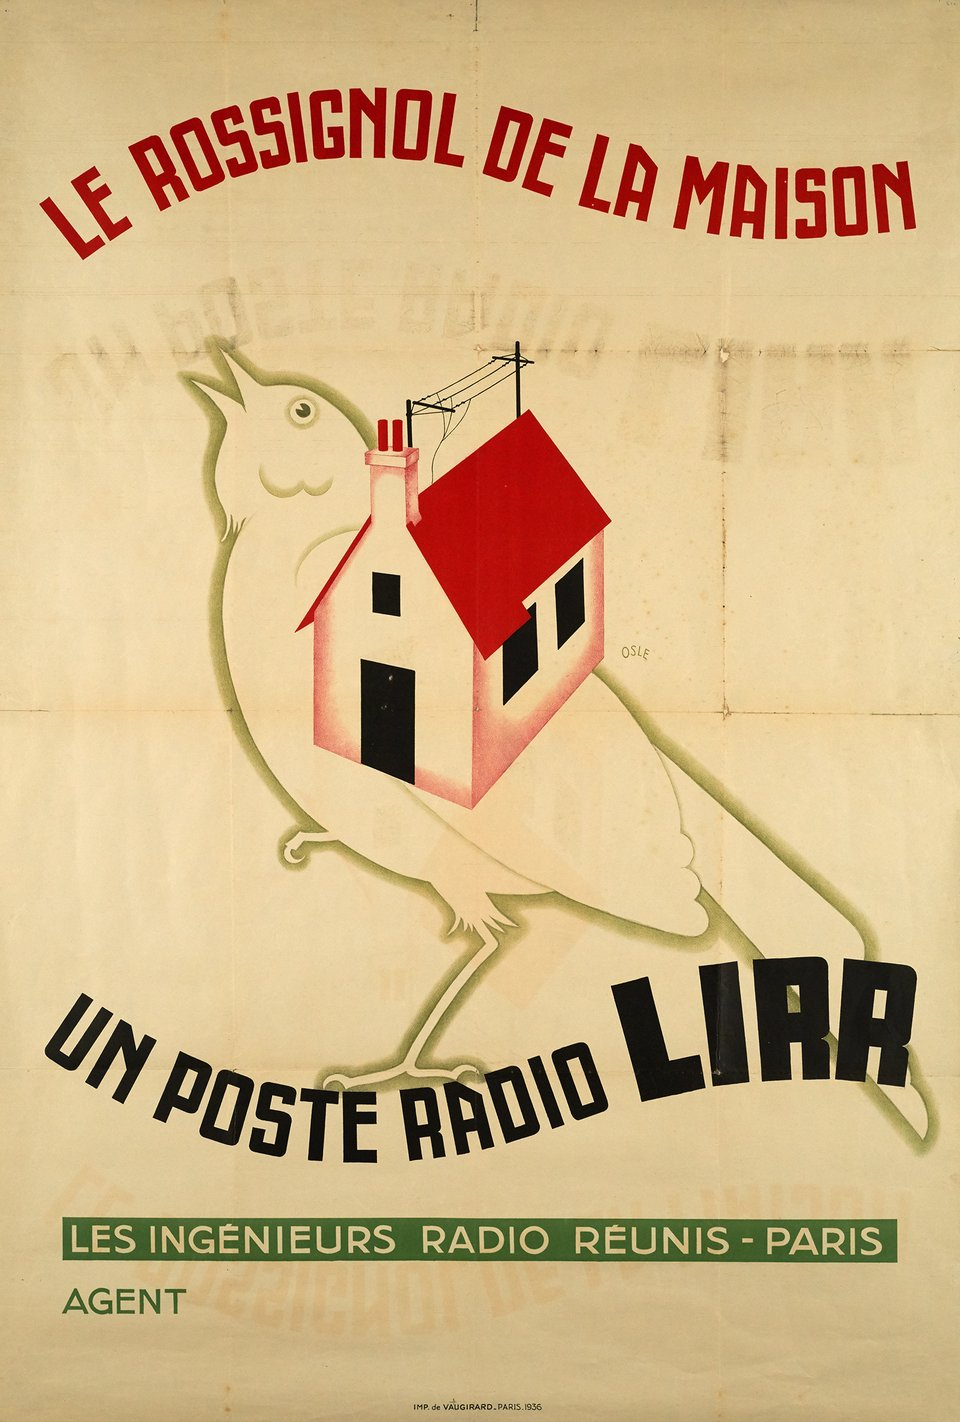 vintage poster un post radio lirr le rossignol de la maison galerie 1 2 3. Black Bedroom Furniture Sets. Home Design Ideas